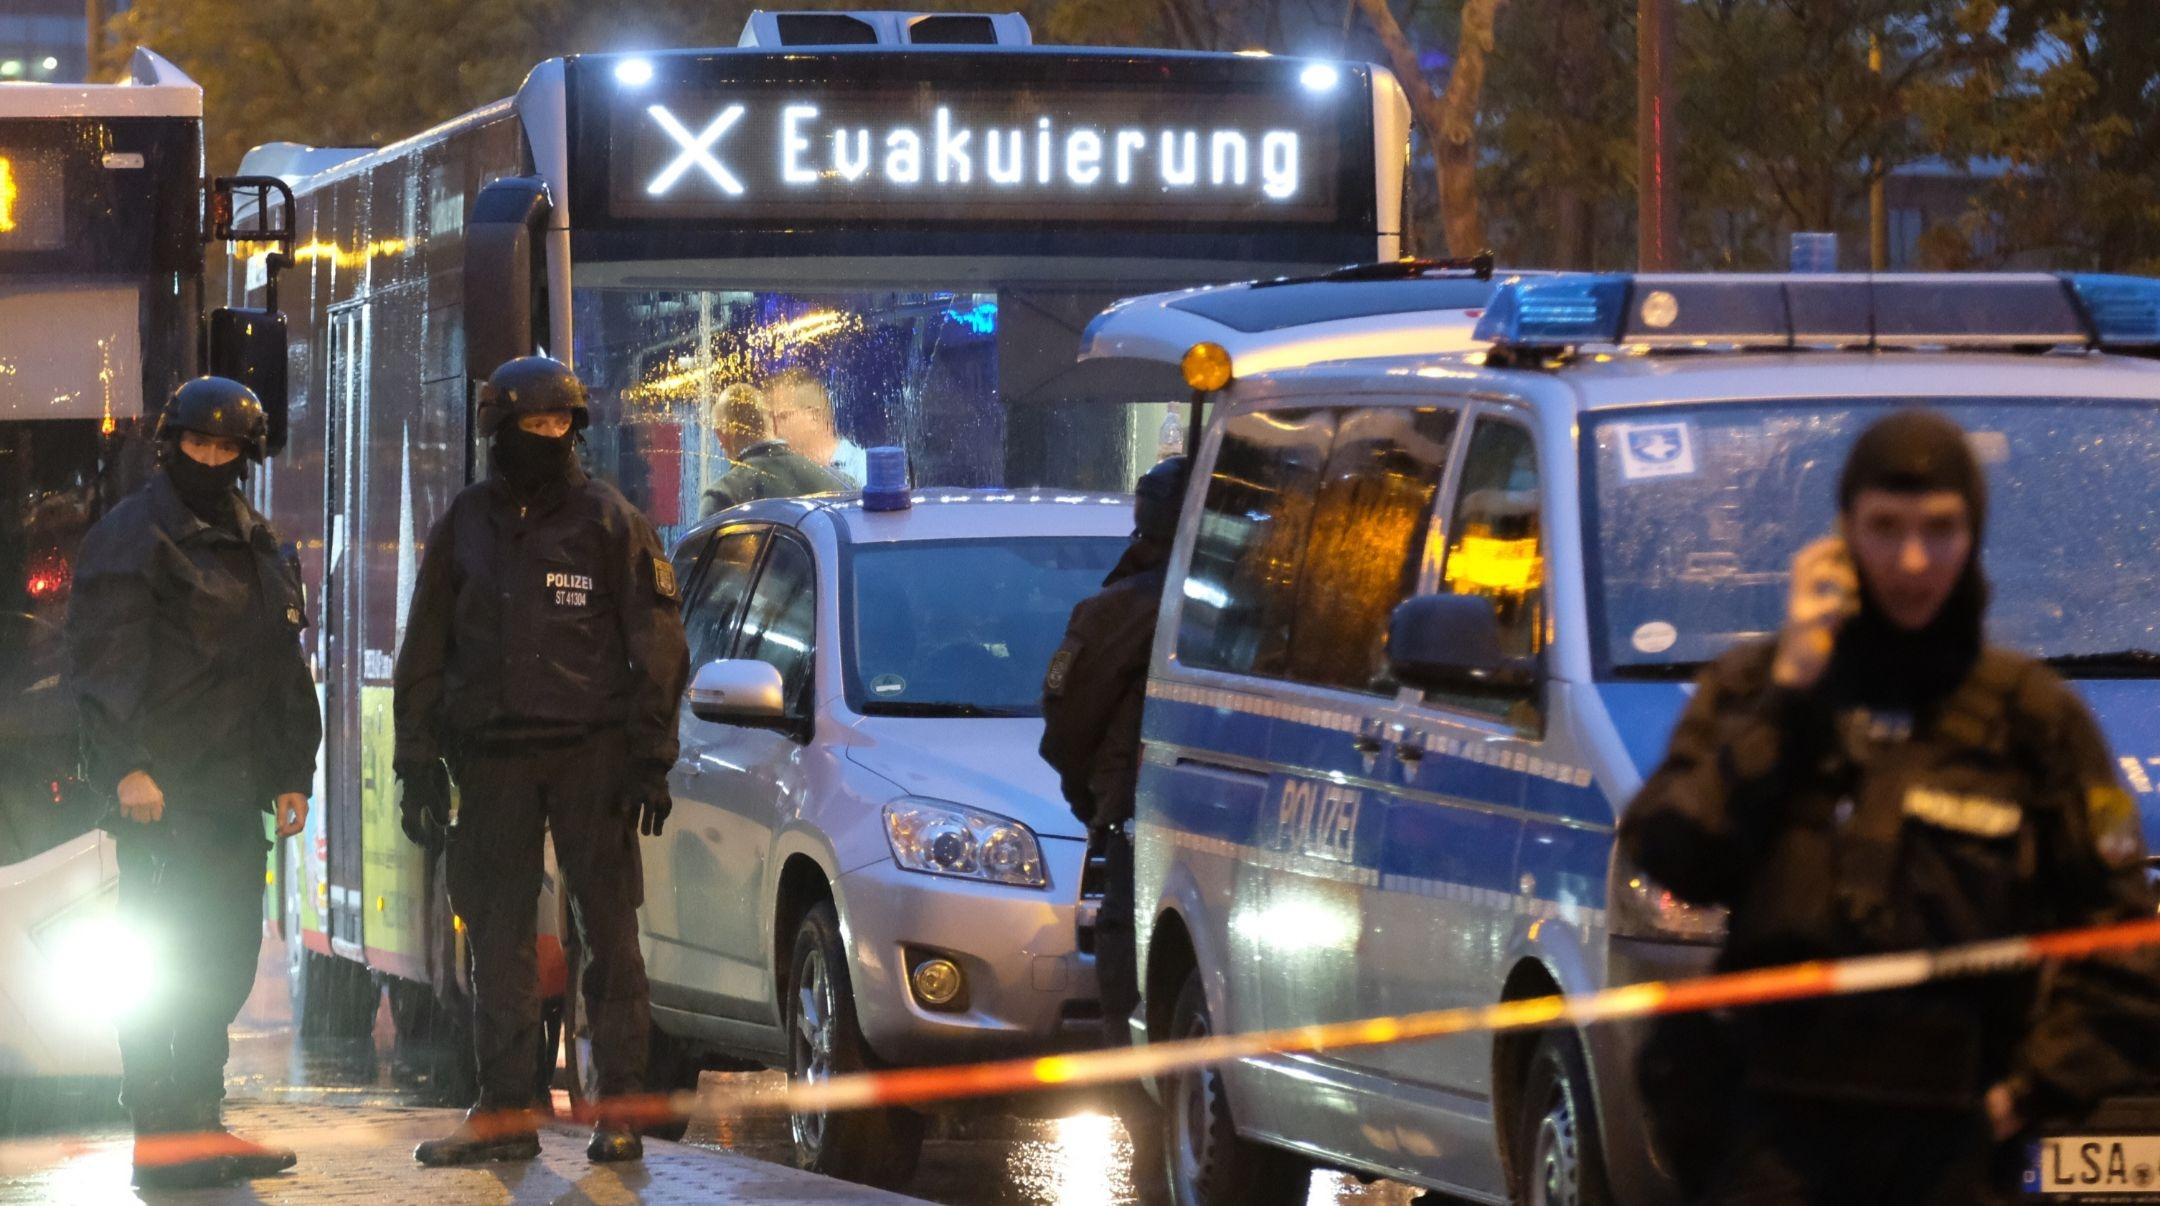 """A bus with the inscription """"evacuation"""" is escorted by police in Halle, Germany, where a gunman killed two people before being taken into custody by police, Oct. 9, 2019. (Sebastian Willnow/dpa-Zentralbild/dpa/picture alliance via Getty Images)"""